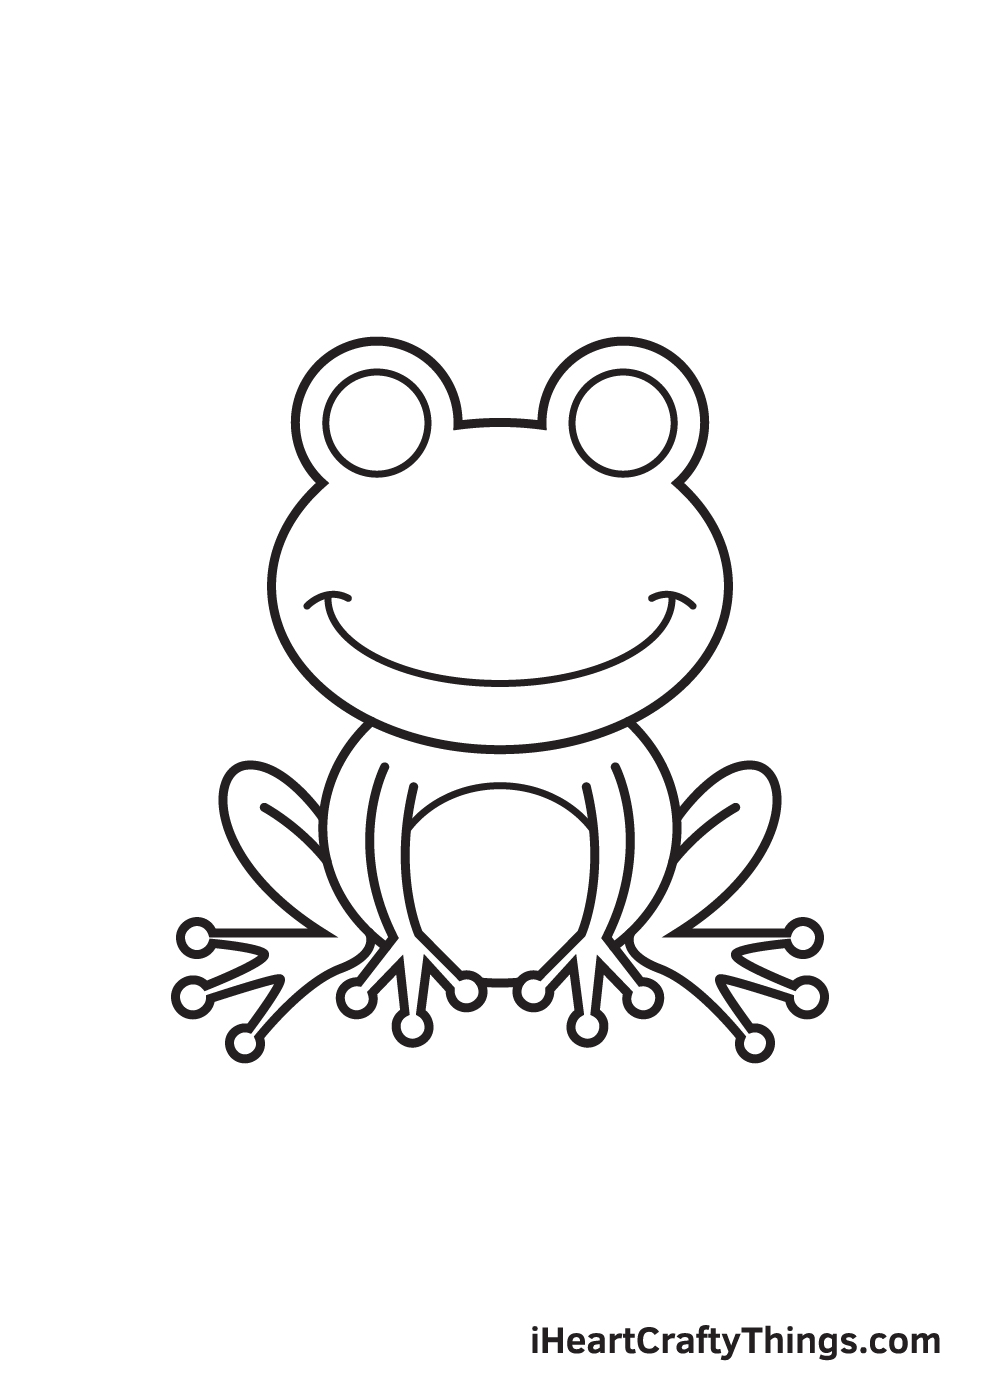 Frog Drawing – Step 8